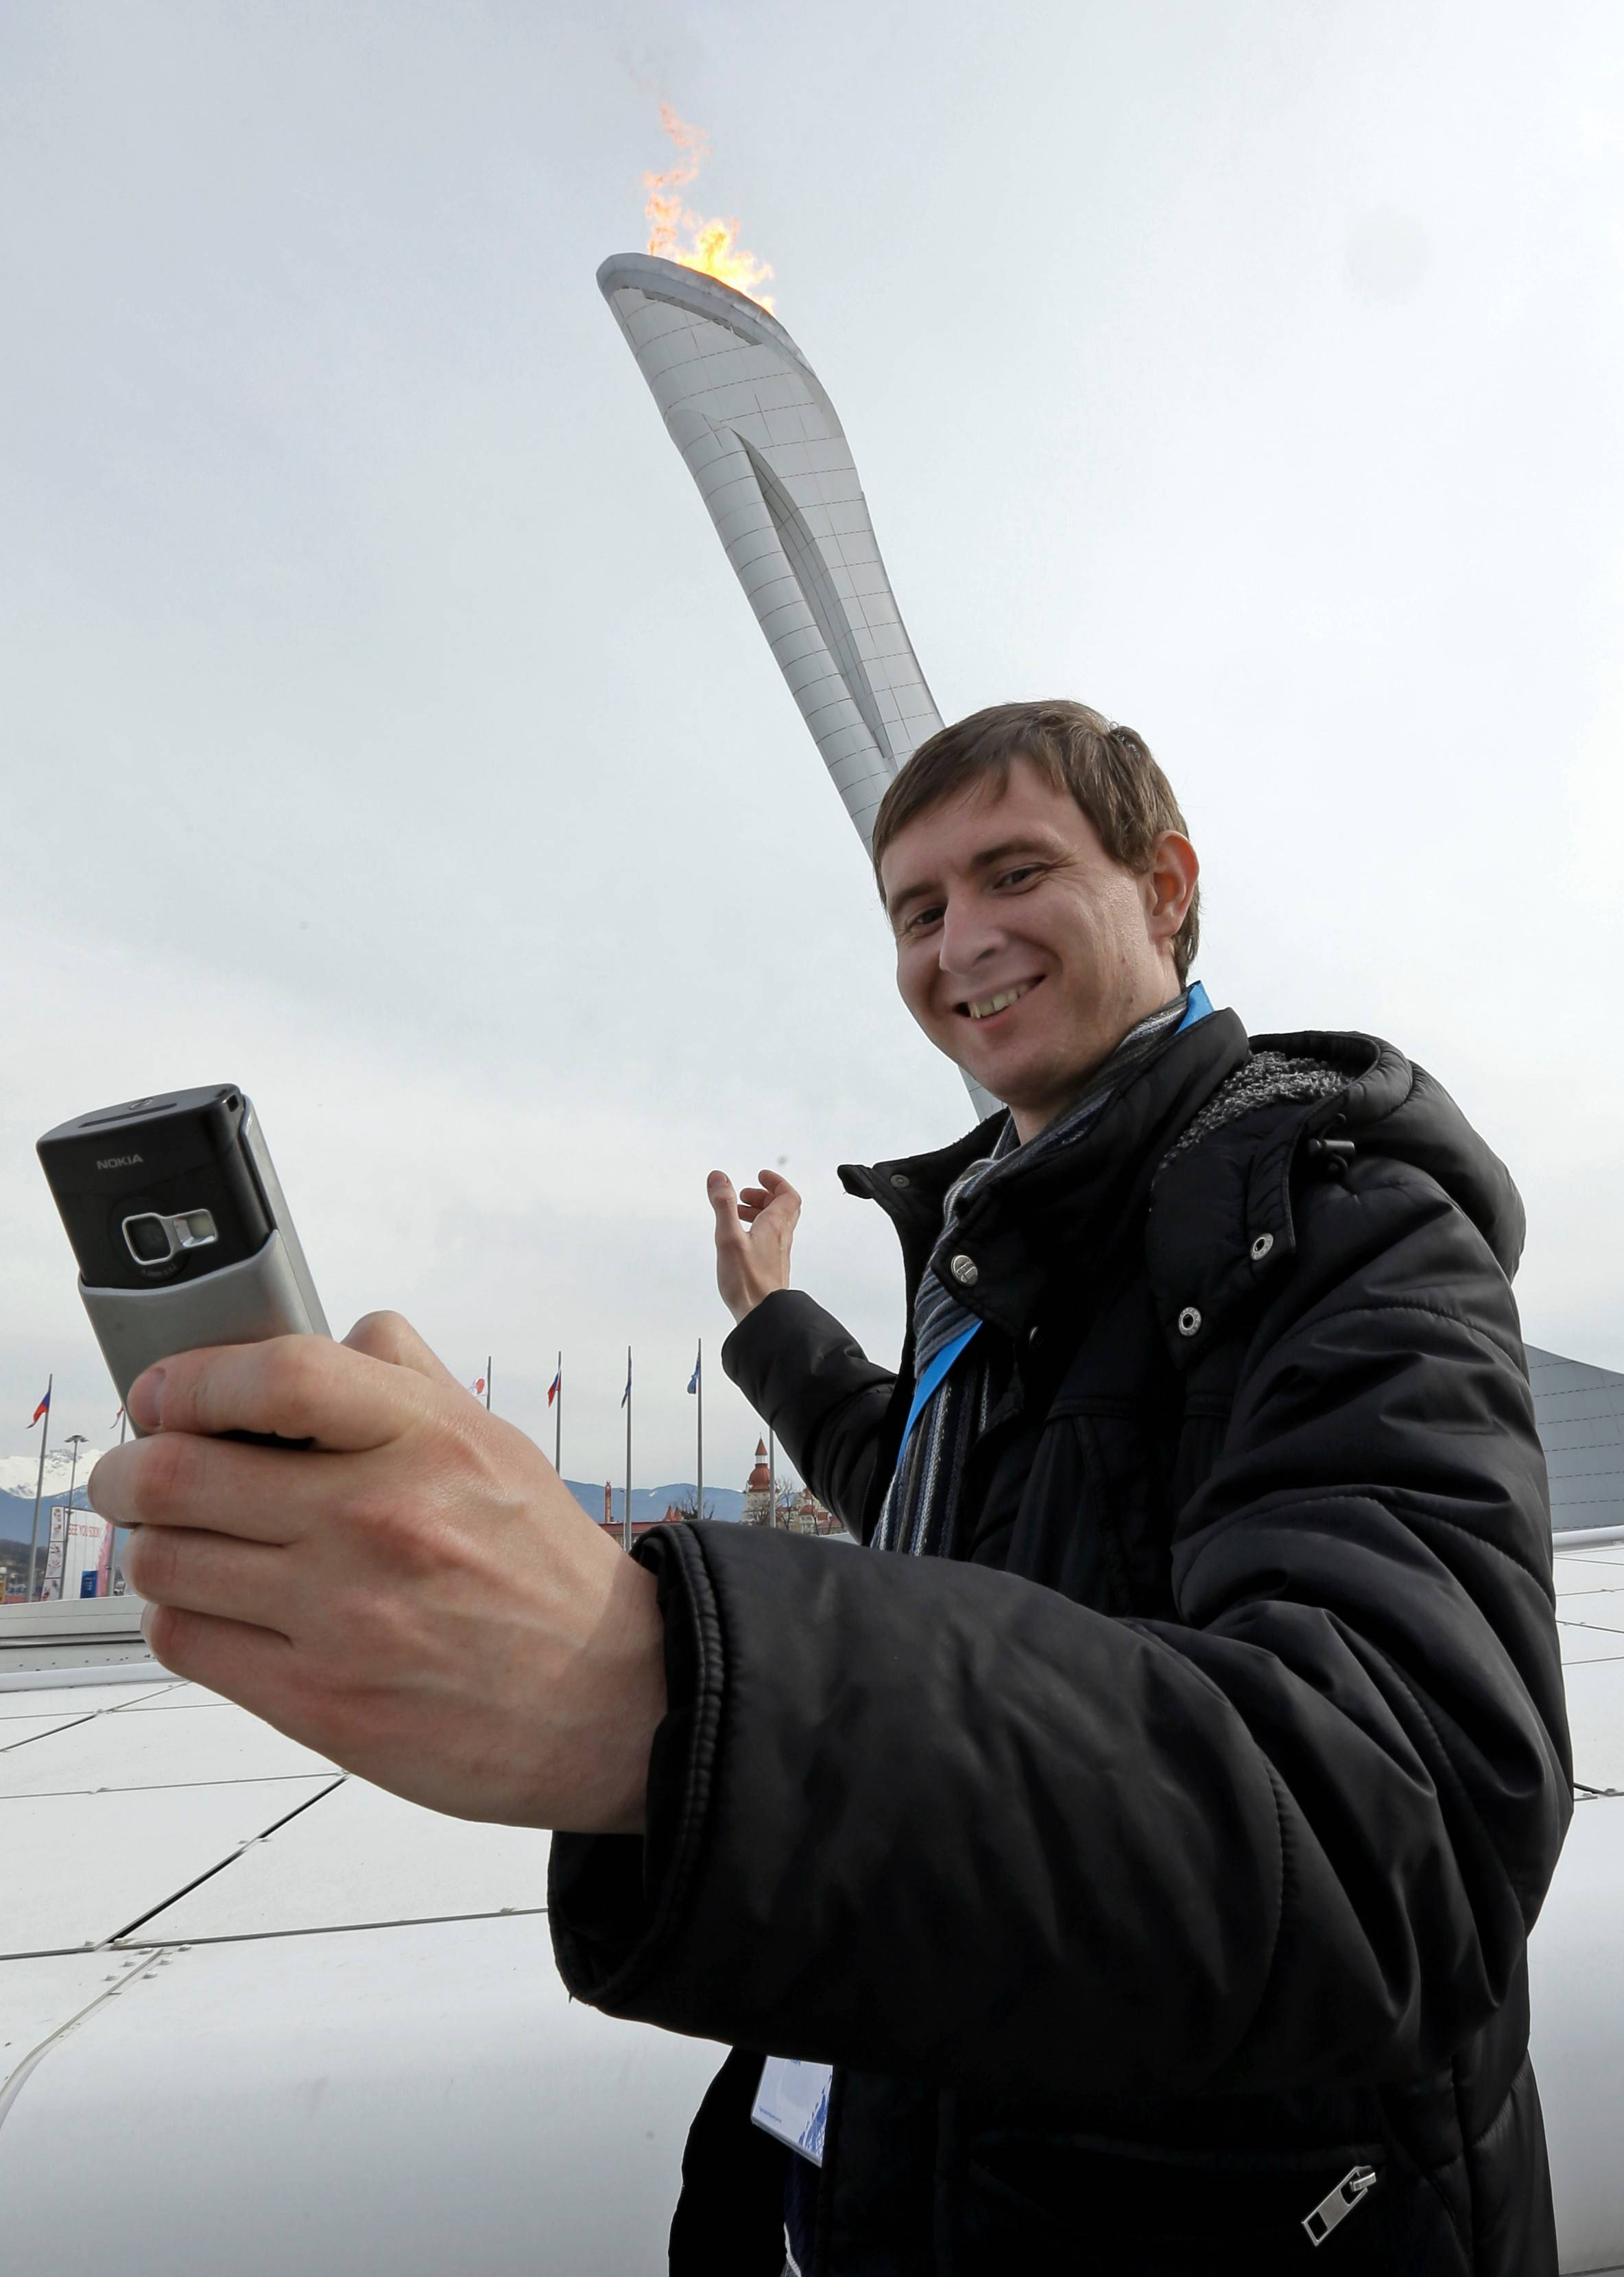 Sartakov Pavel Albertovich takes a selfie in front of the Olympic Cauldron at the 2014 Winter Olympics on Sunday in Sochi, Russia.